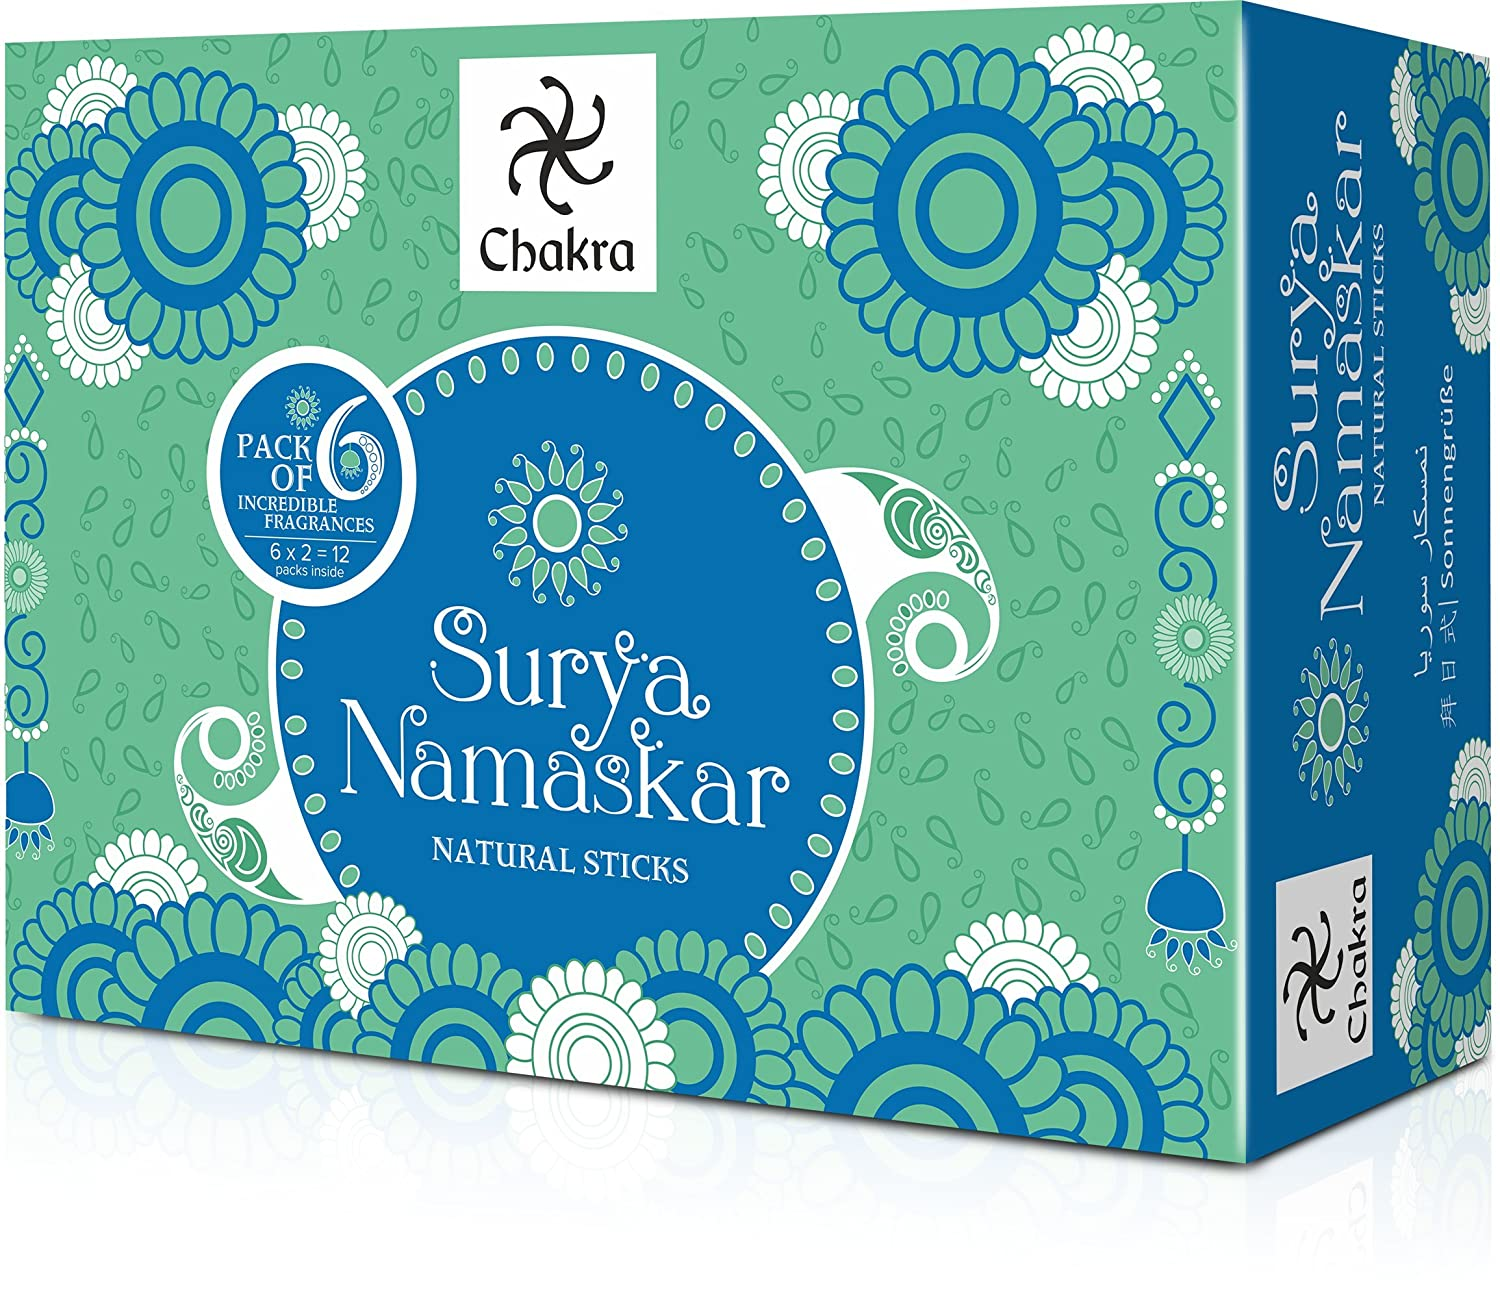 Chakra Surya Namaskar Long Lasting Incense Sticks- 6 Fragrance - Made from Natural Essential Oils & Herbal Ingredients- Inspired by Yoga Aasanas- Effective for Meditation and Yoga-Pack of 12